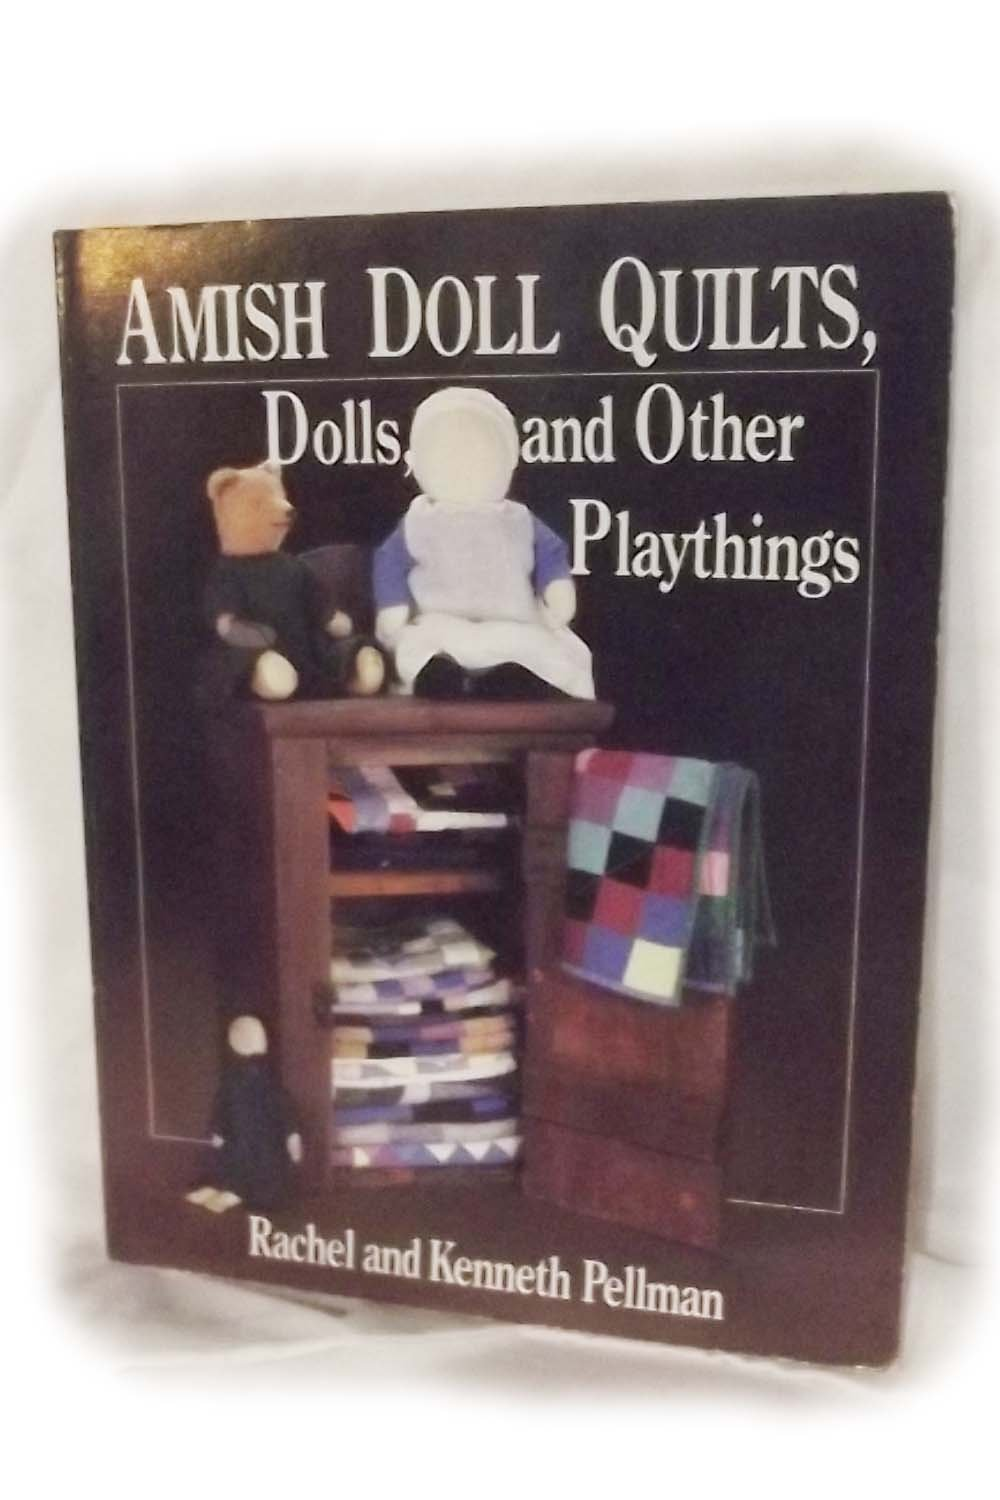 Amish Doll Quilts, Dolls, and Other Playthings